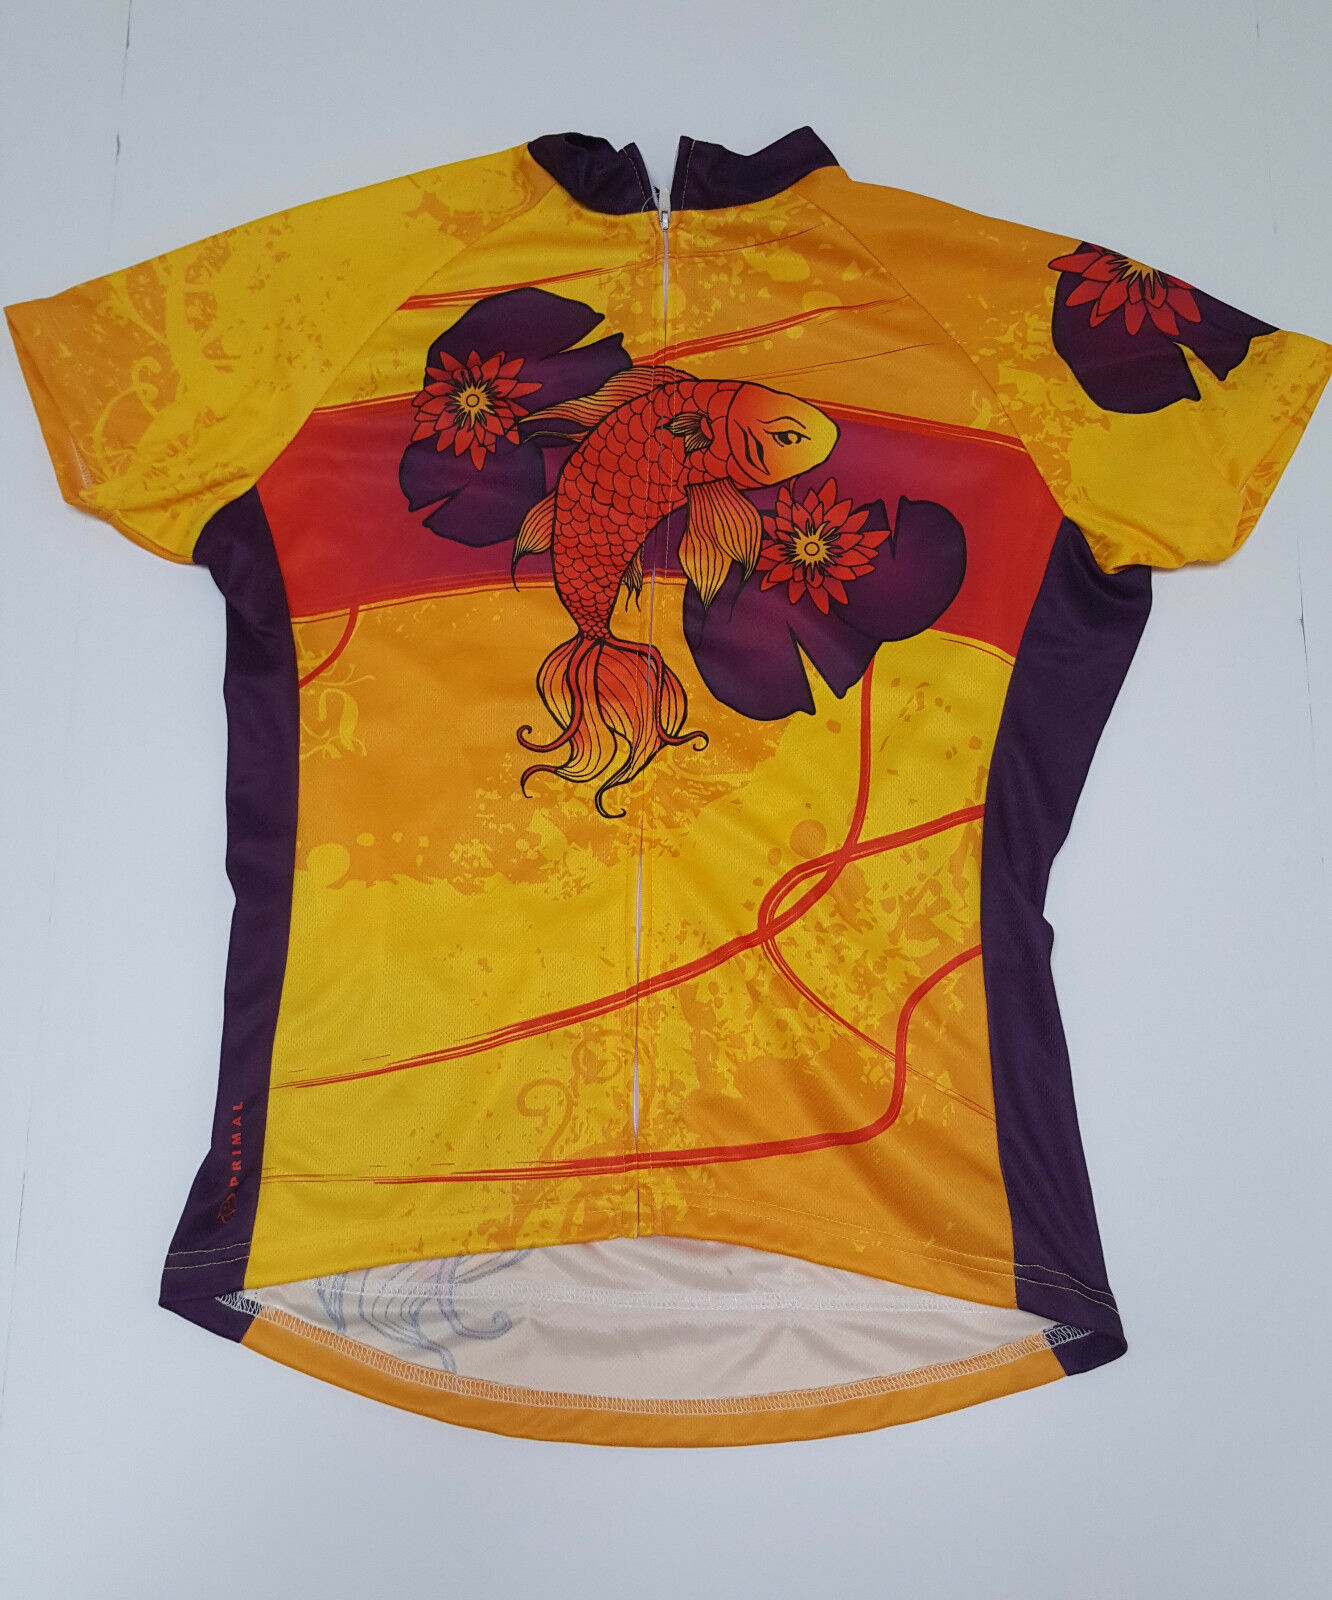 Primal Ladies Caspian Cycling  Jersey Medium  outlet store